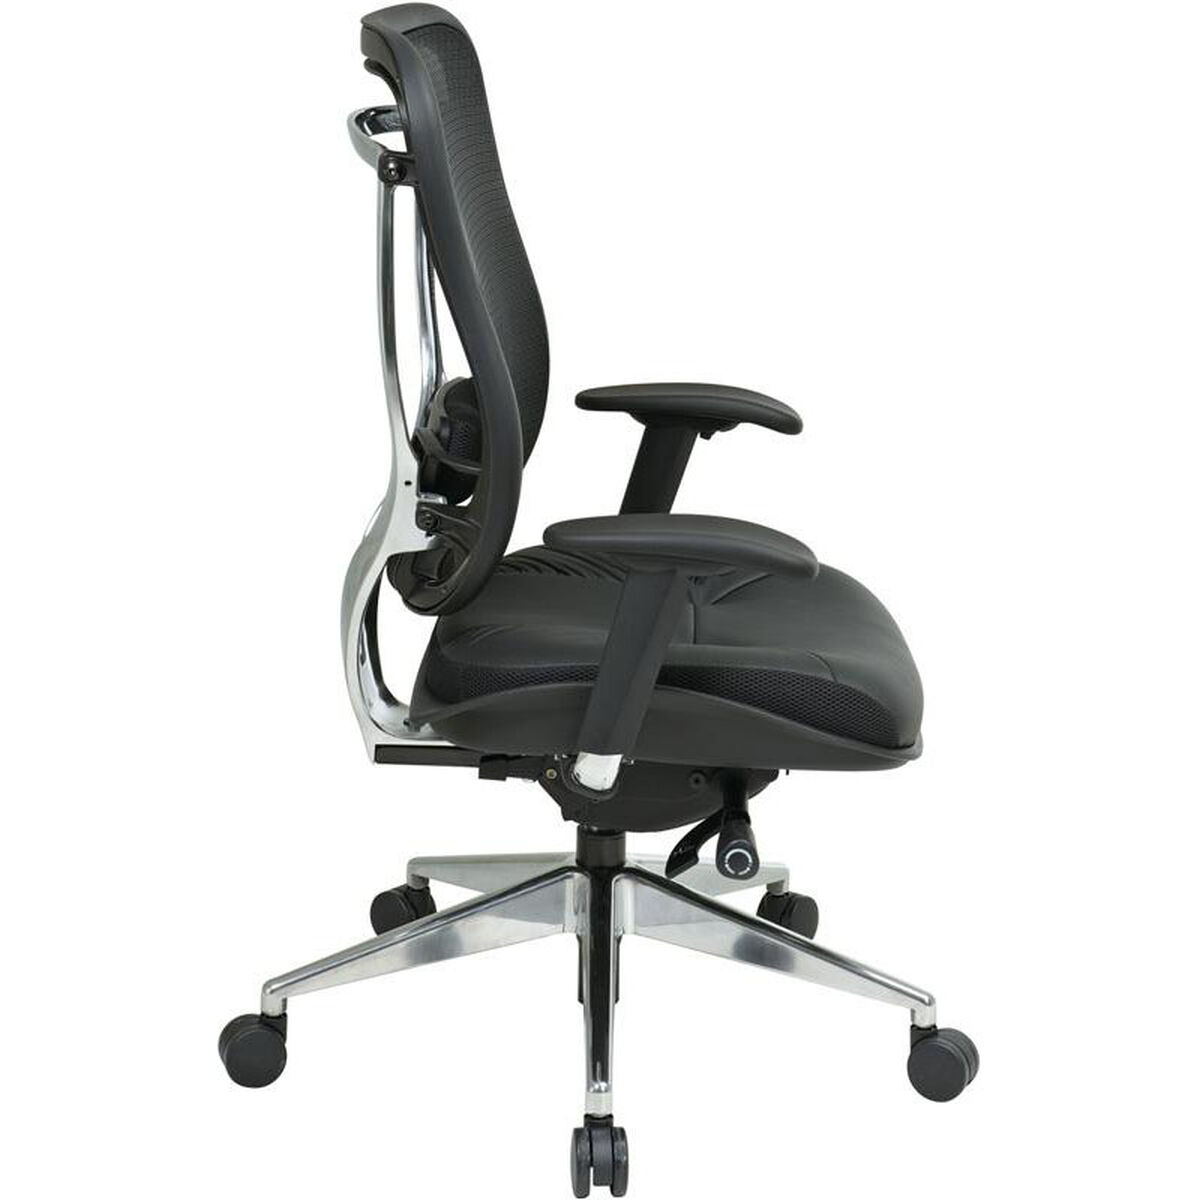 Our E 818 Executive High Back Office Chair With Breathable Mesh And Leather Seat